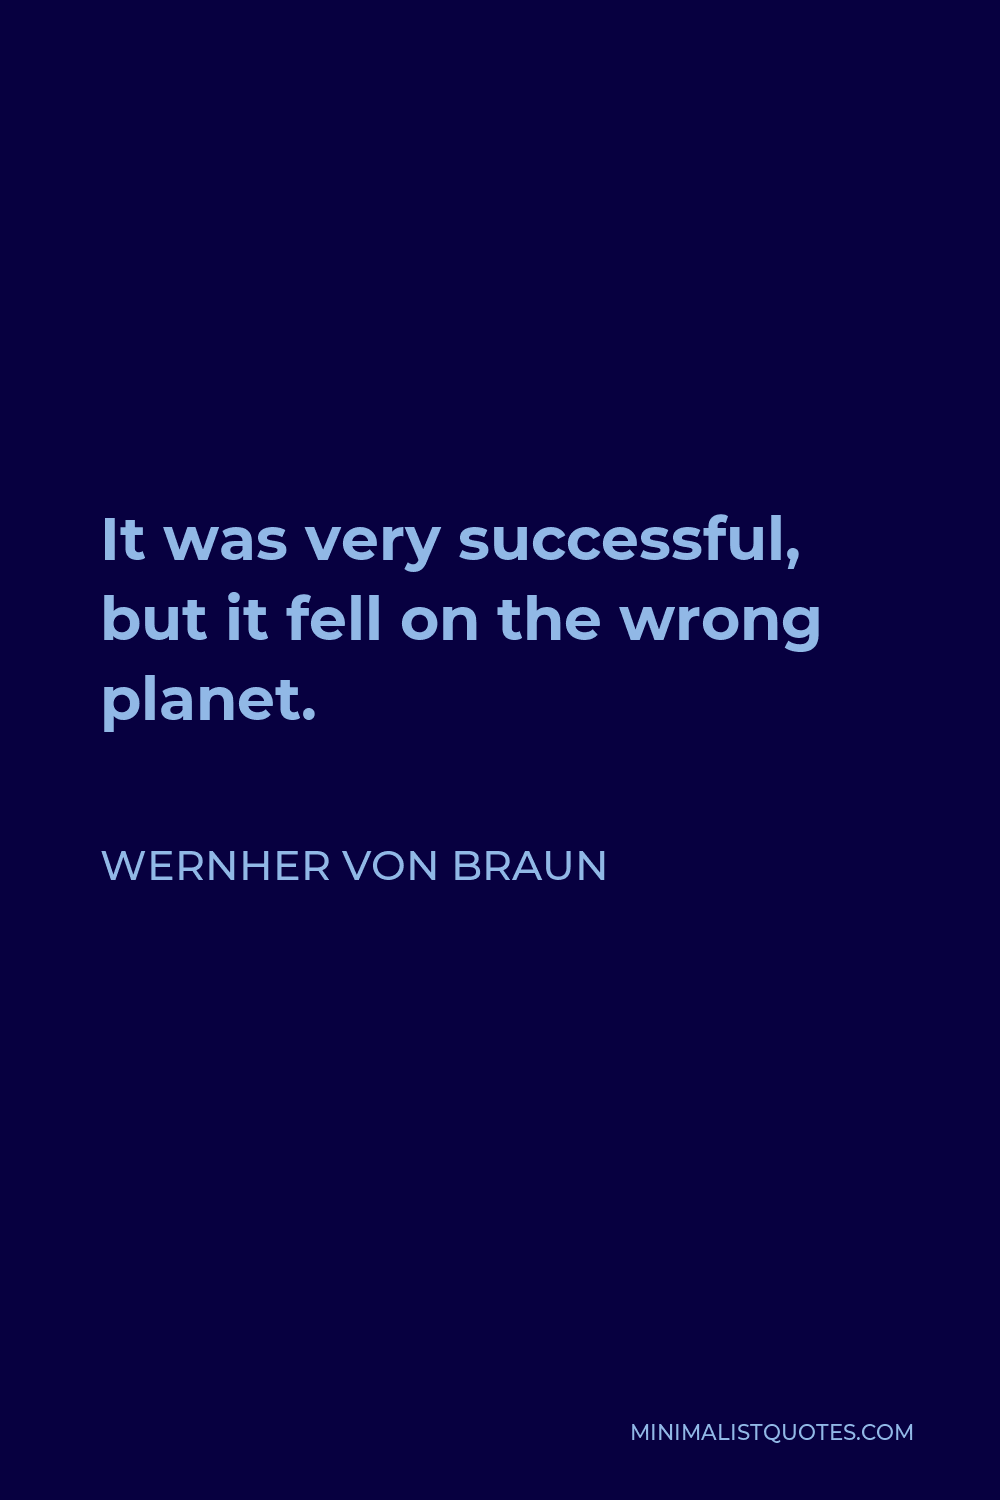 Wernher von Braun Quote - It was very successful, but it fell on the wrong planet.